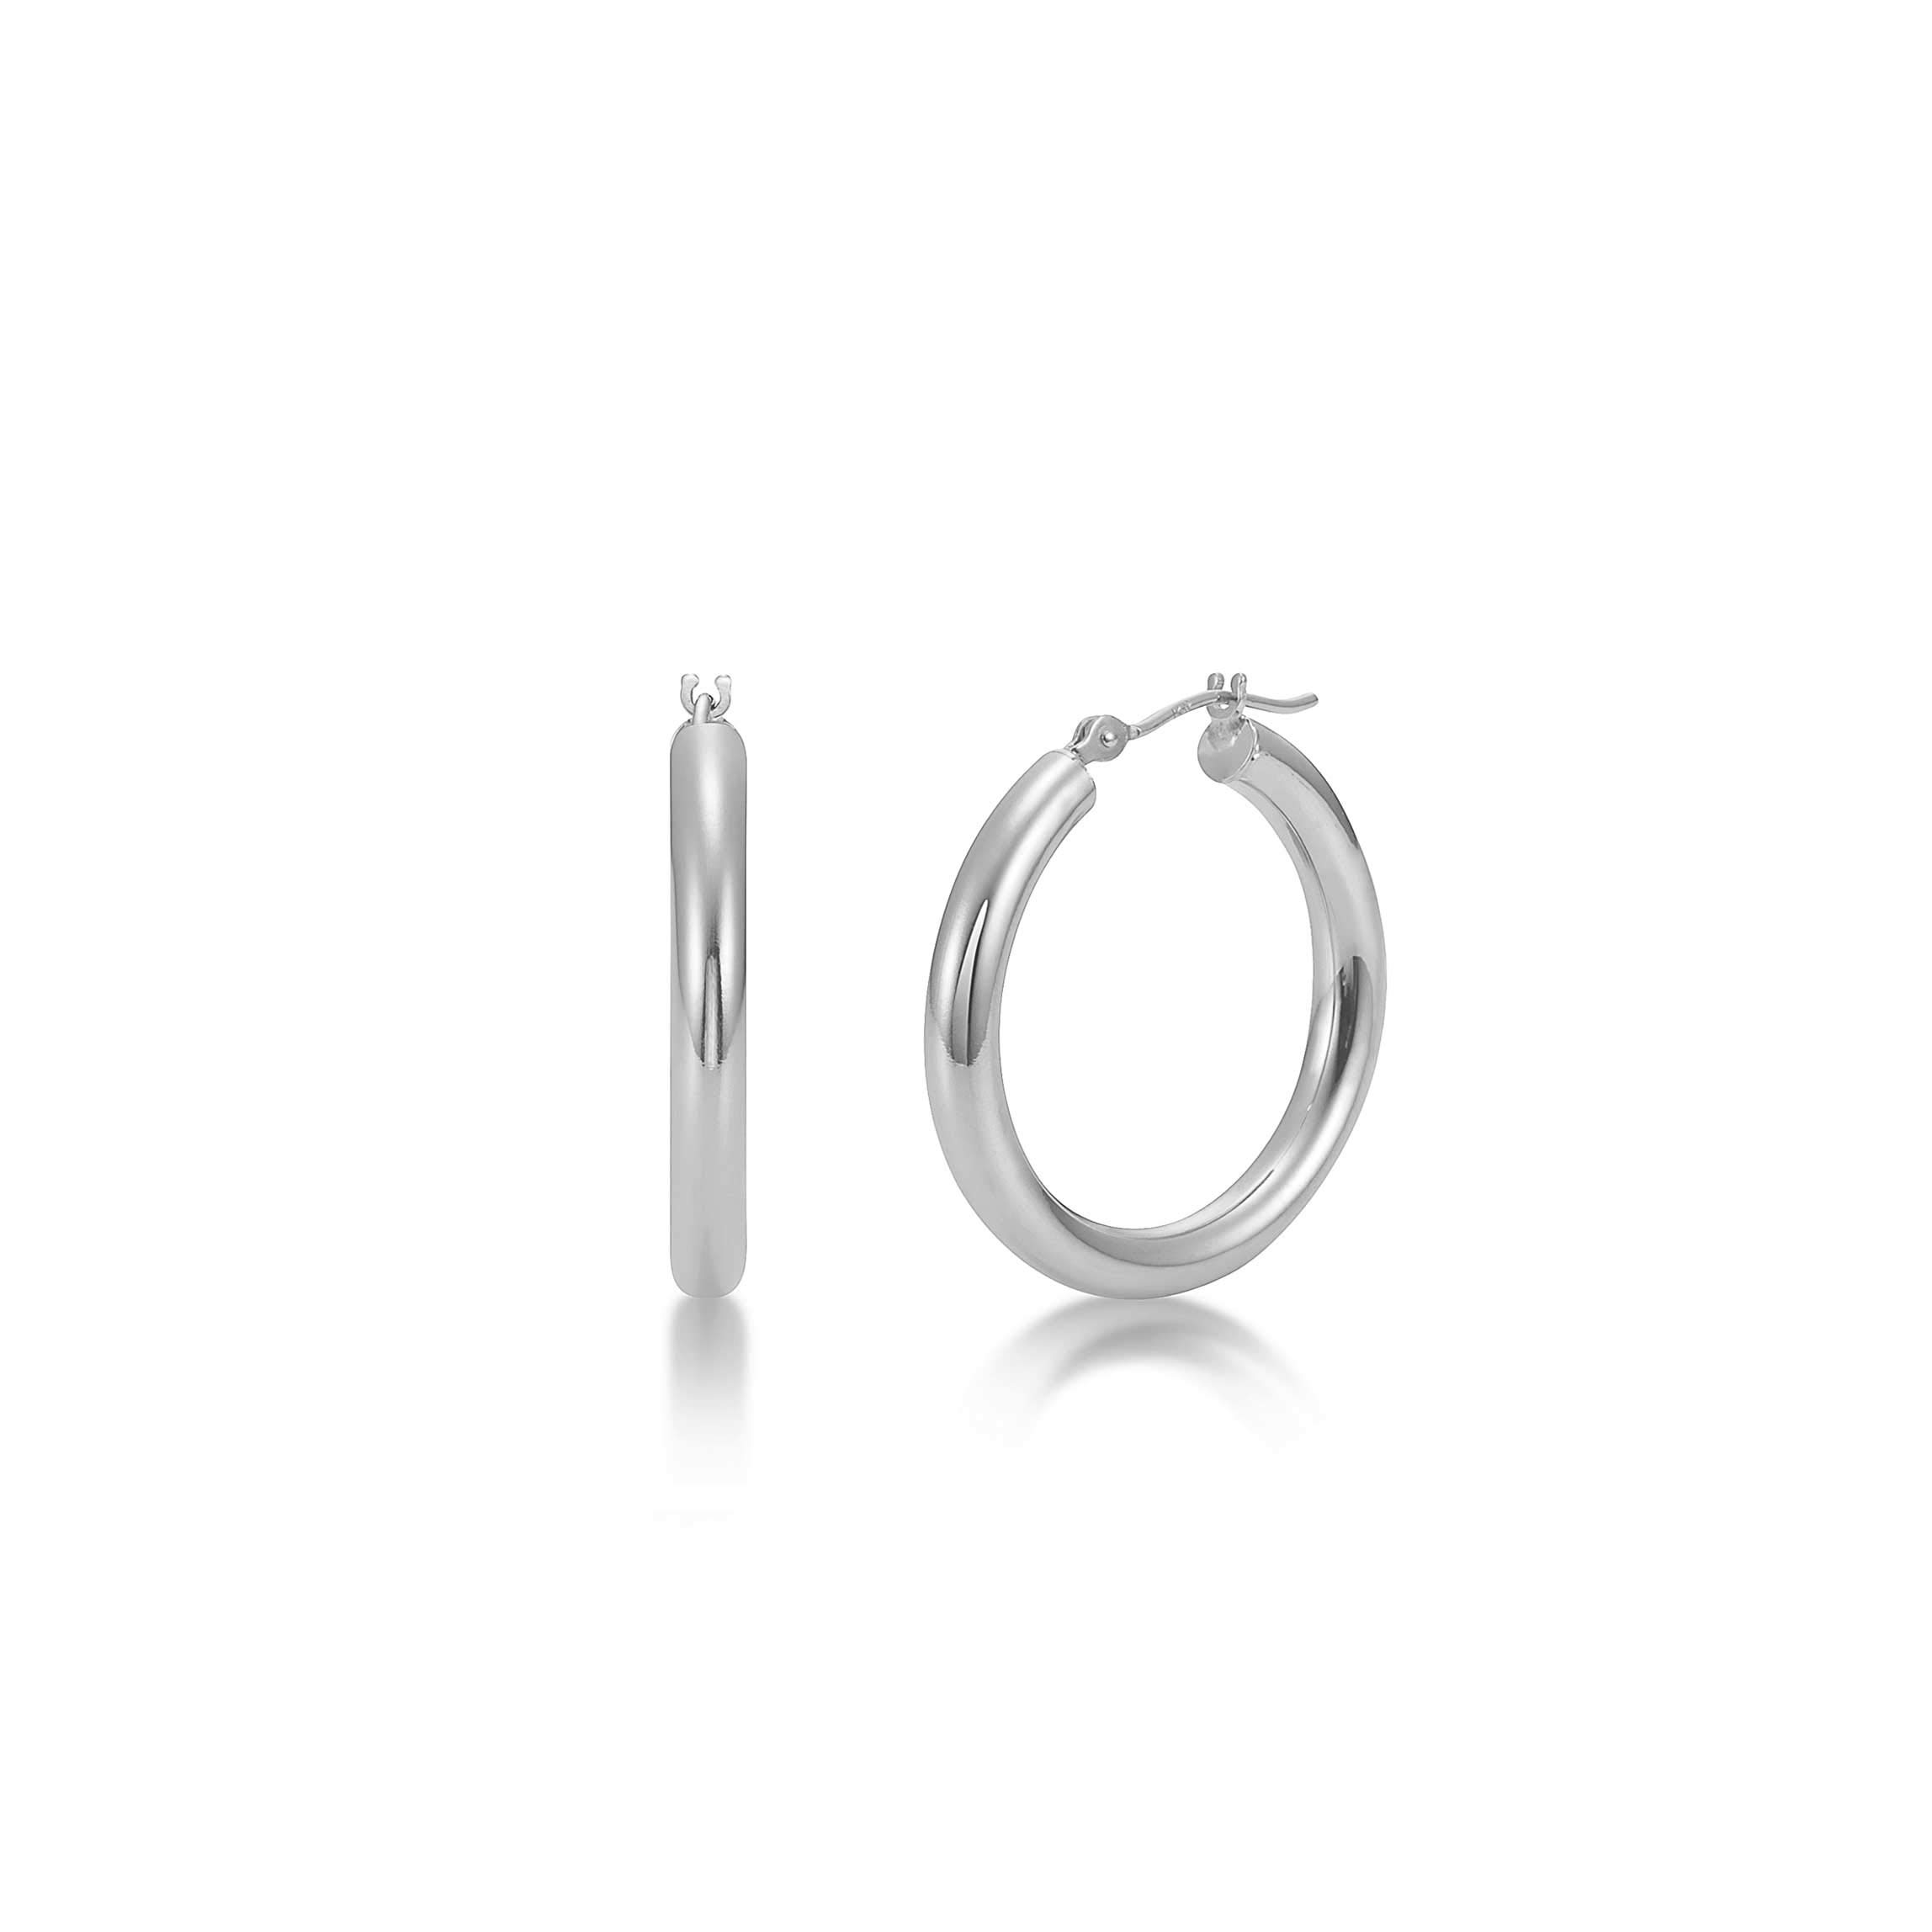 Sterling Silver Hoop Earrings - 3mm x 18mm Click-Top Tube Hoop by KEZEF Creations (Image #1)